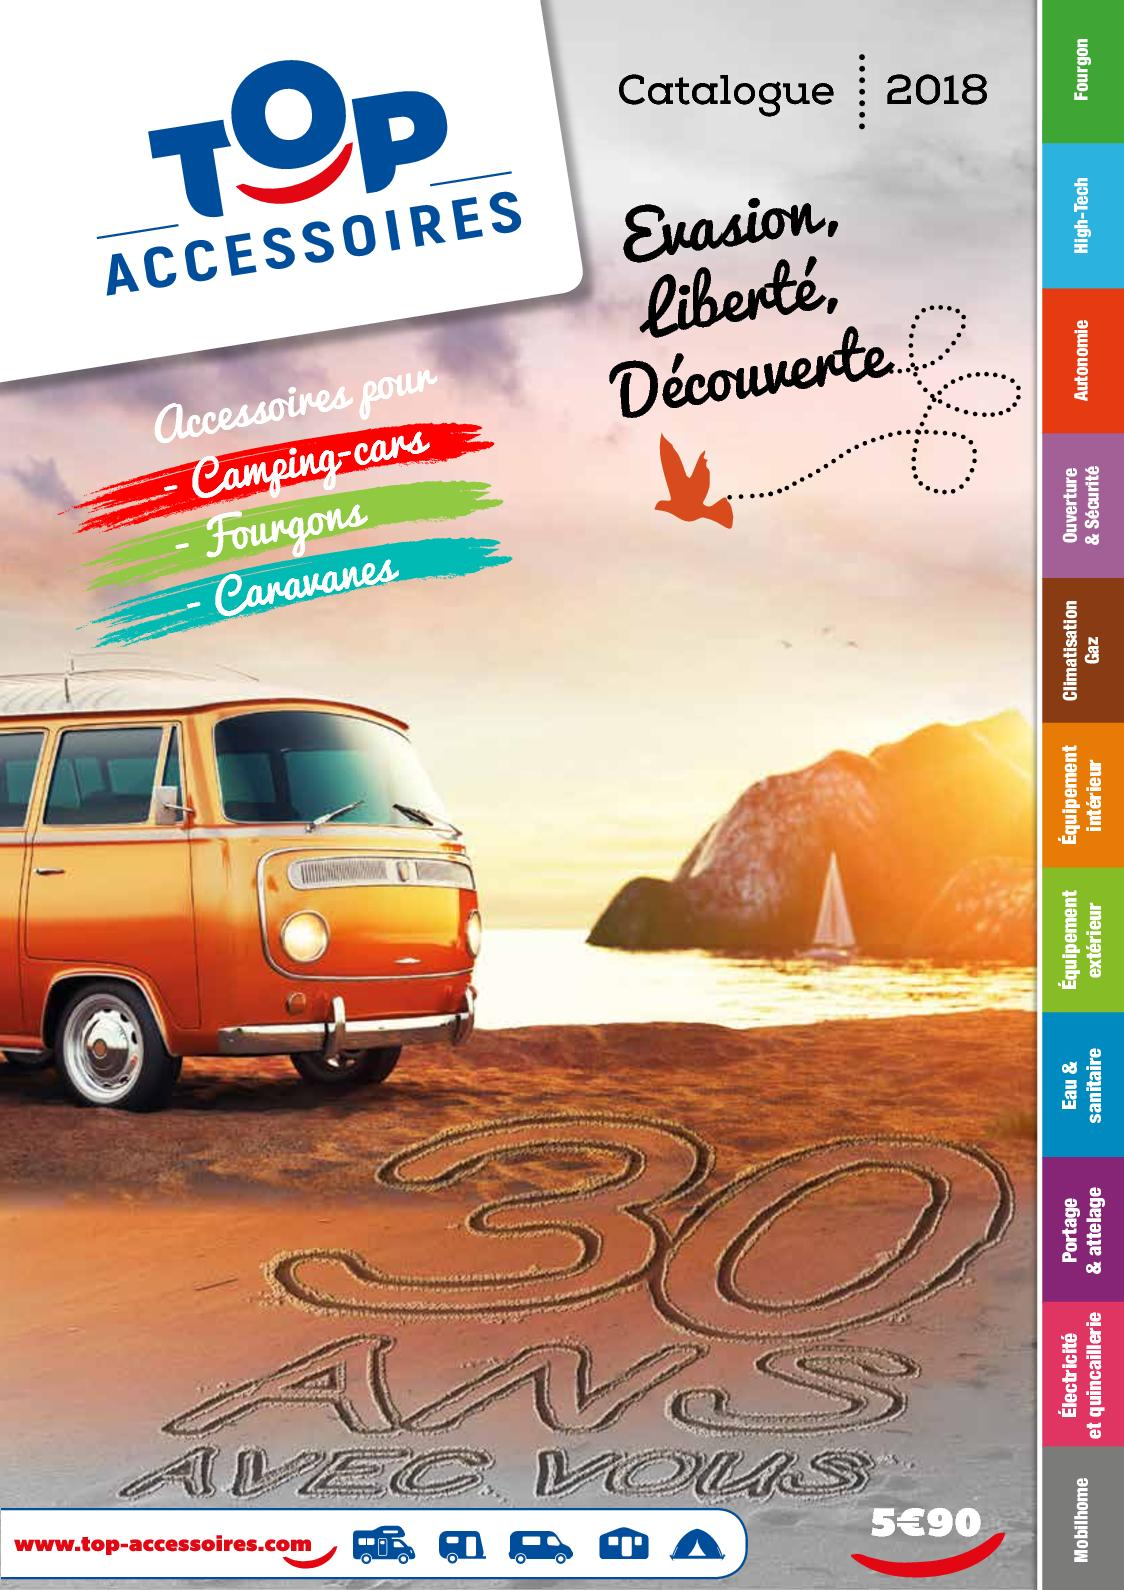 Calaméo Top Accessoires Catalogue Catalogue 2018 Top Calaméo vNmn8w0